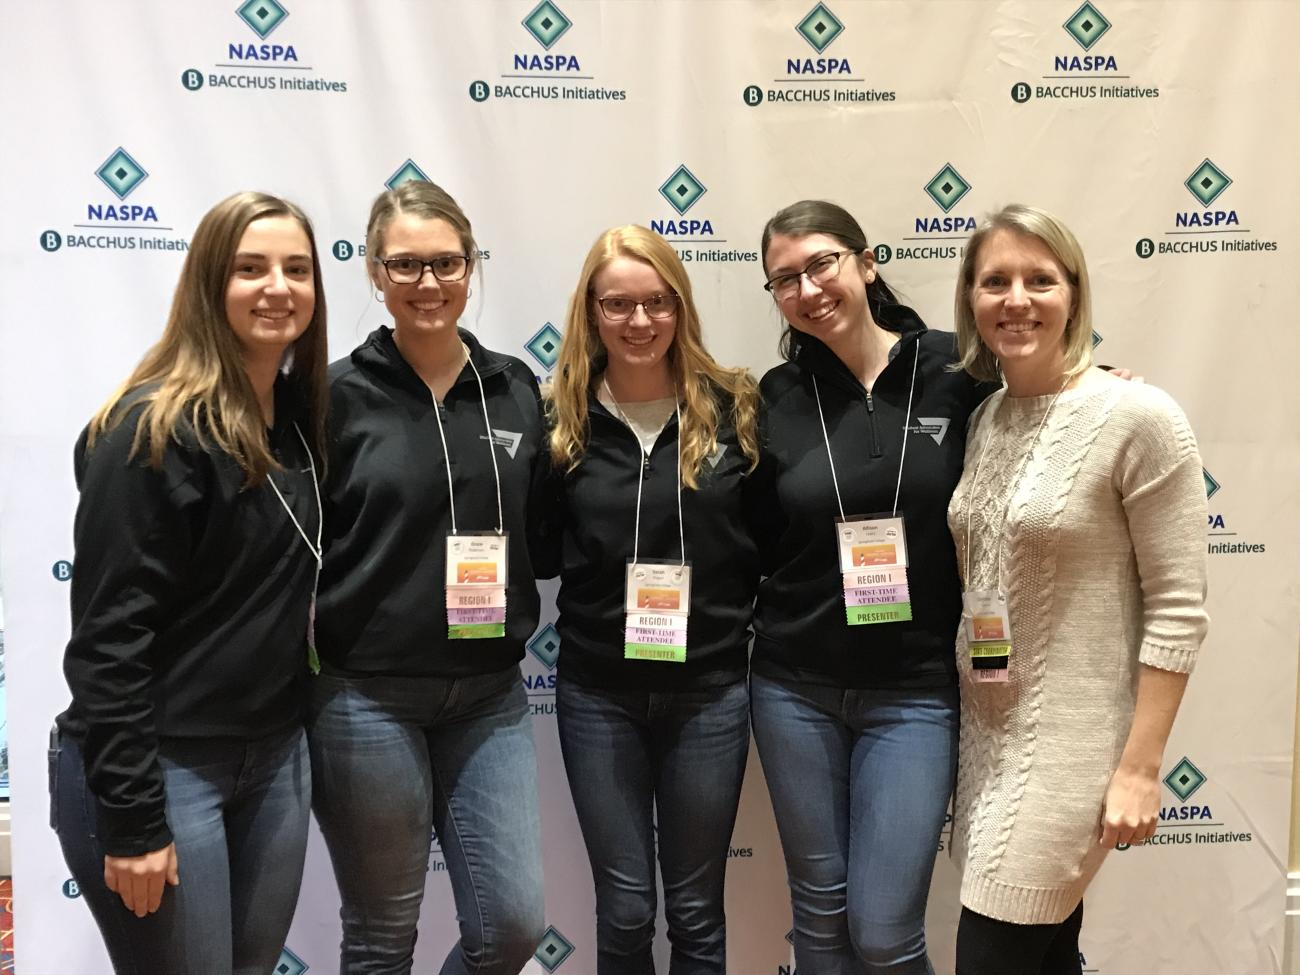 Students from the Springfield College Student Advocates for Wellness recently presented information on the health risks of vaping at the National Association of Student Personnel Administrator (NASPA) General Assembly in Baltimore, Md.